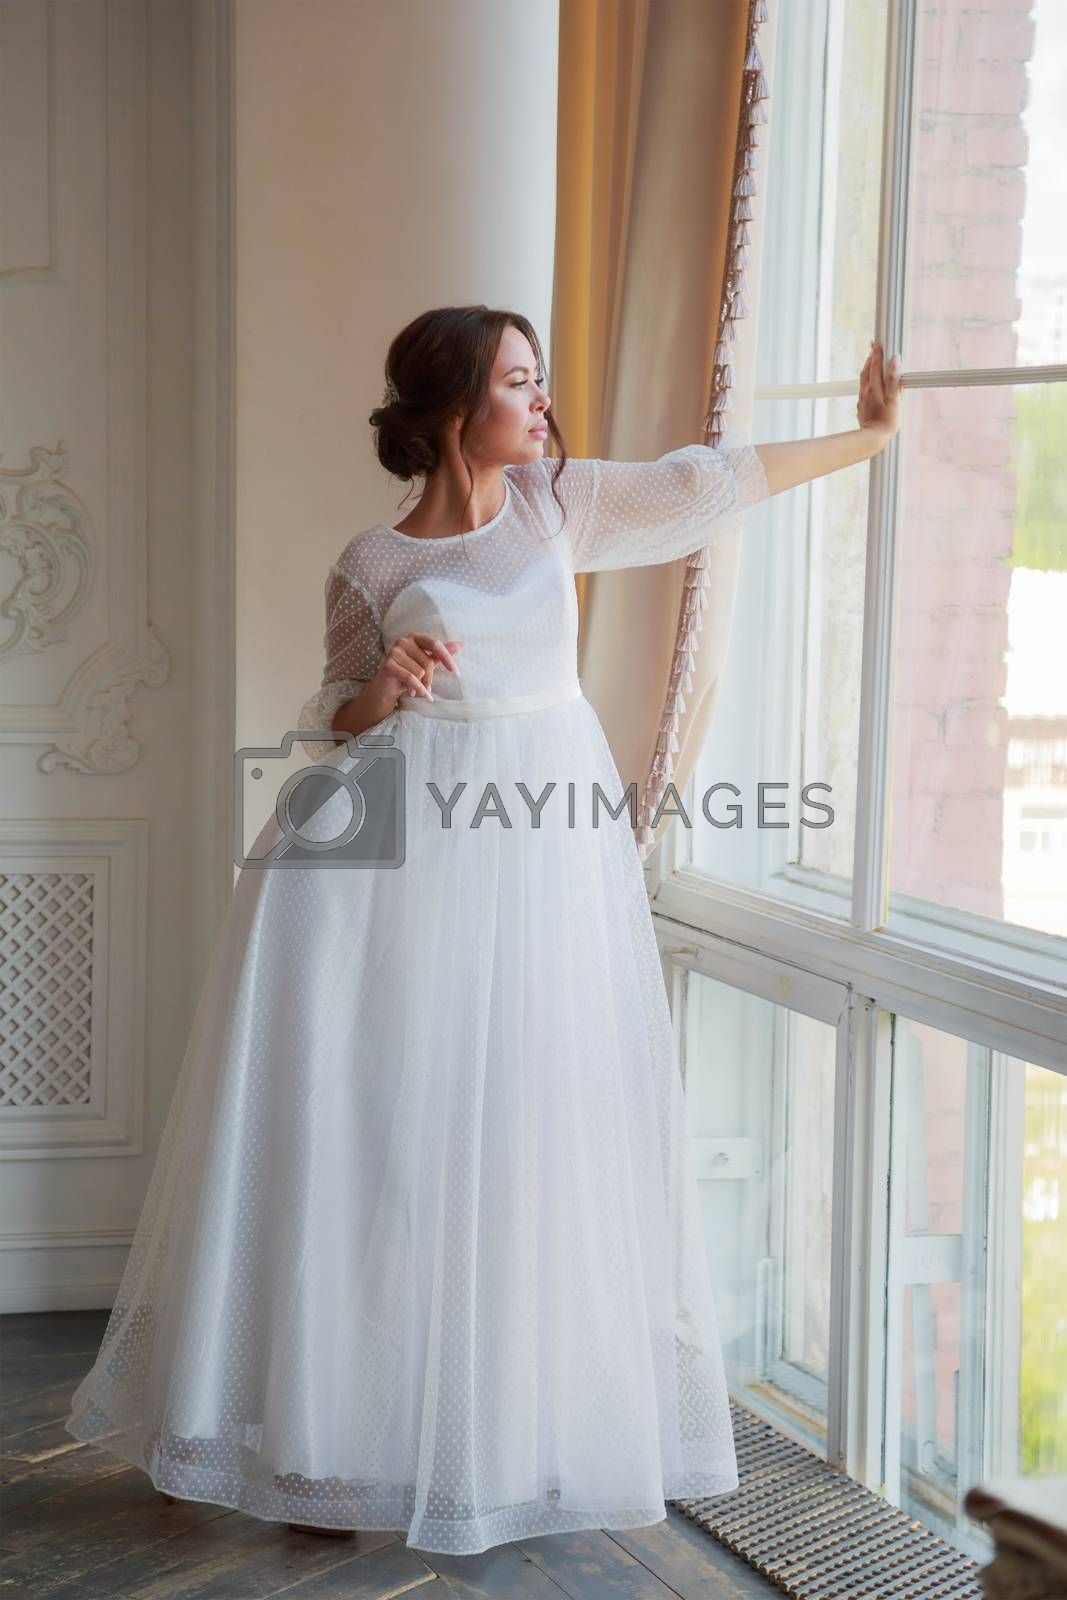 Full-length portrait of the bride in a white wedding dress by the window.